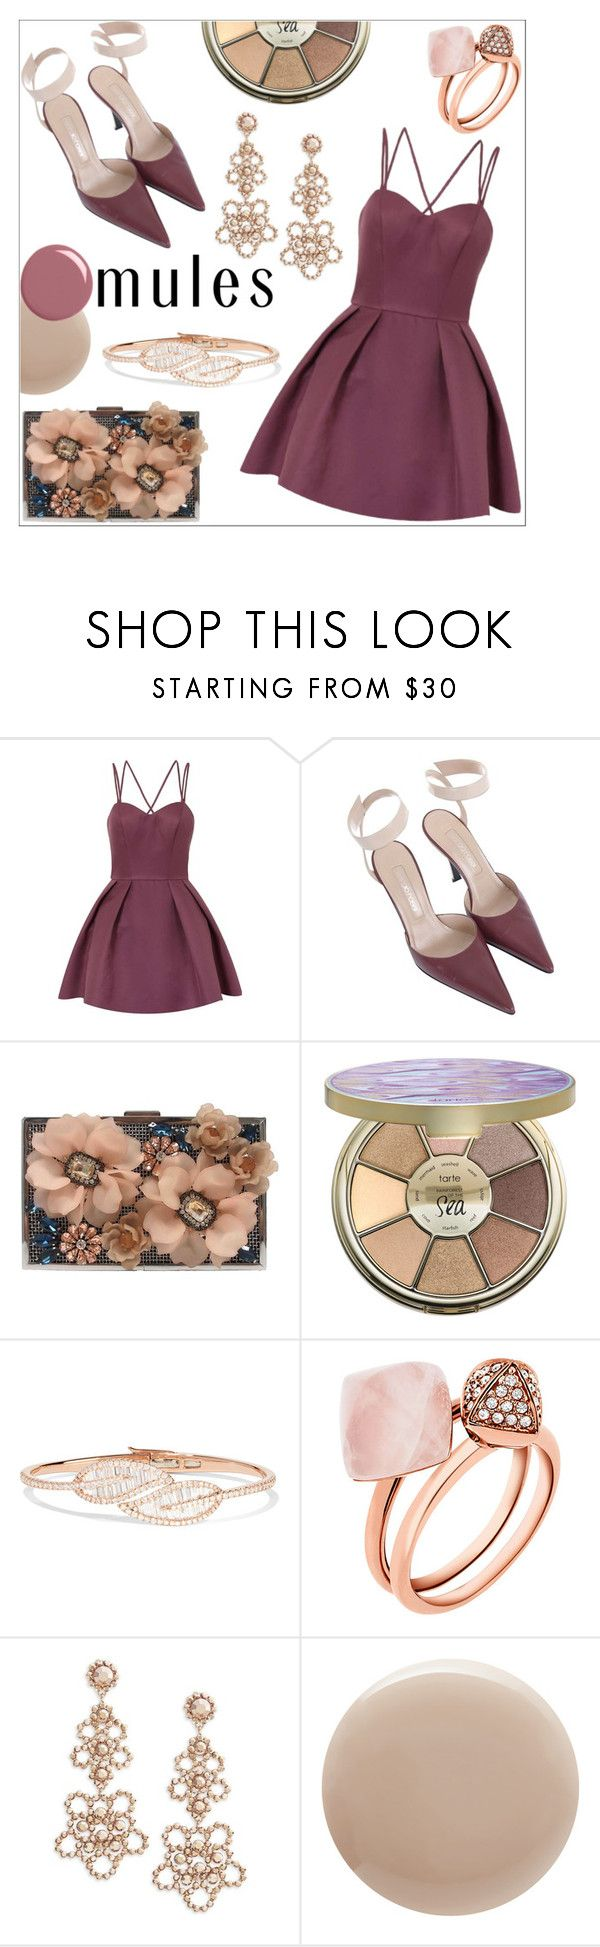 """Slip 'Em On"" by anilia ❤ liked on Polyvore featuring Chi Chi, Sergio Rossi, Sondra Roberts, tarte, Anita Ko, Michael Kors, Kate Spade, Oribe, Gucci and mules"